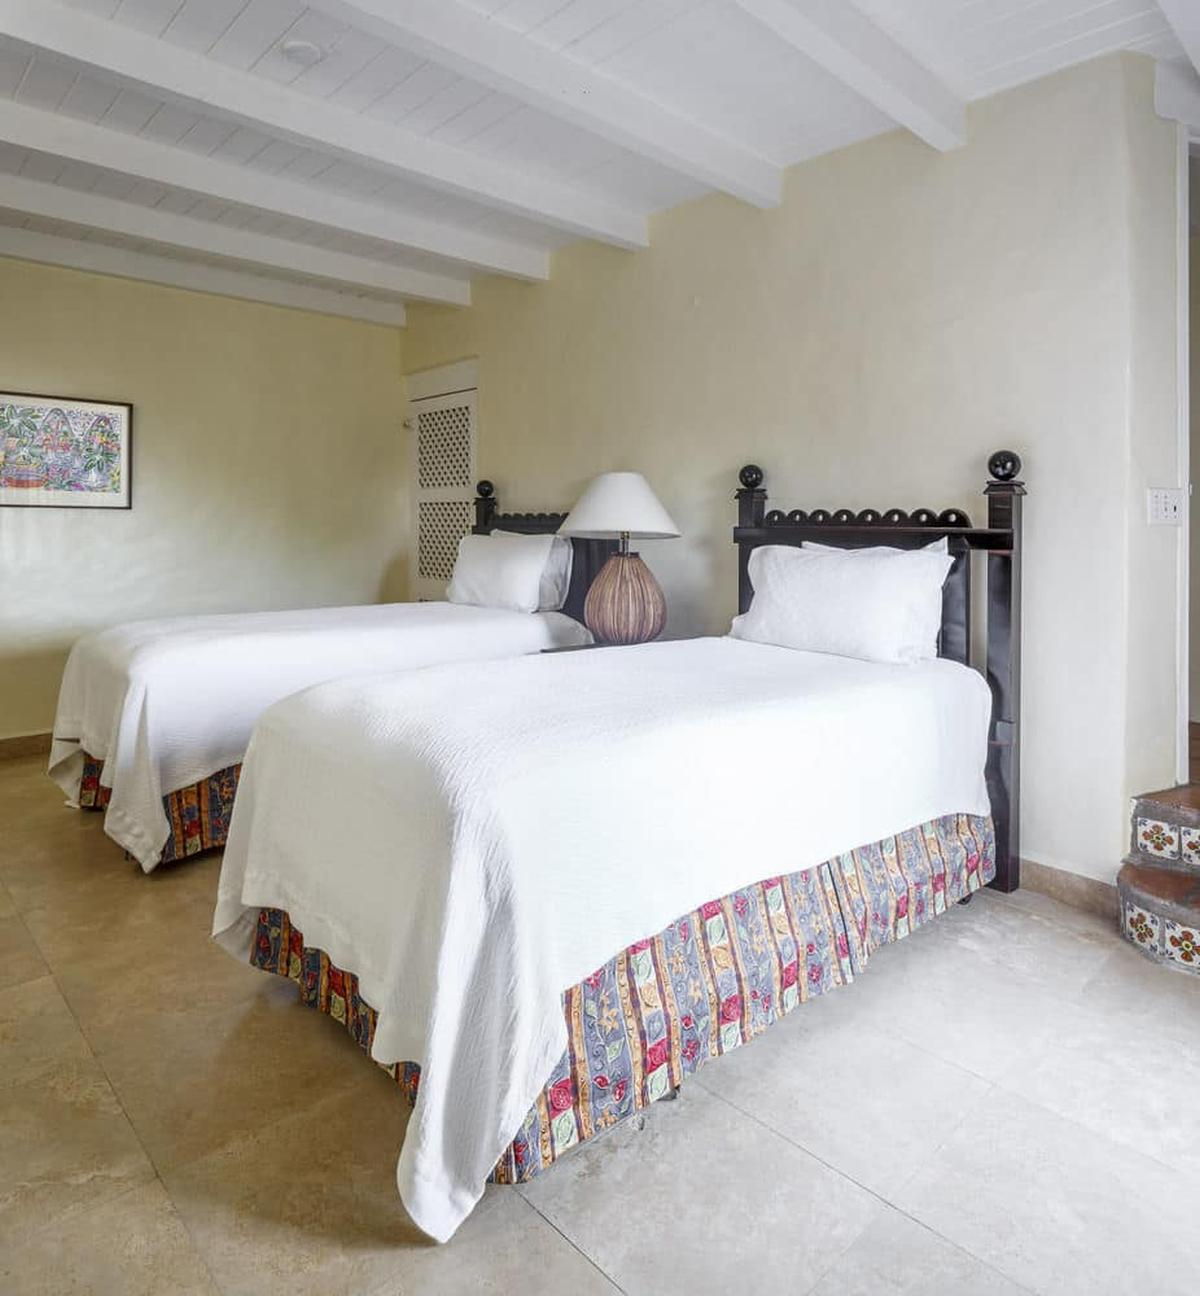 content/hotel/St. Lucia hotelek/Windjammer Landing Villa Beach Resort/Accommodation/Two Bedroom Oceanview/windjammerlandingvillabeachresort-acc-twobedroomoceanviewvilla-01.jpg